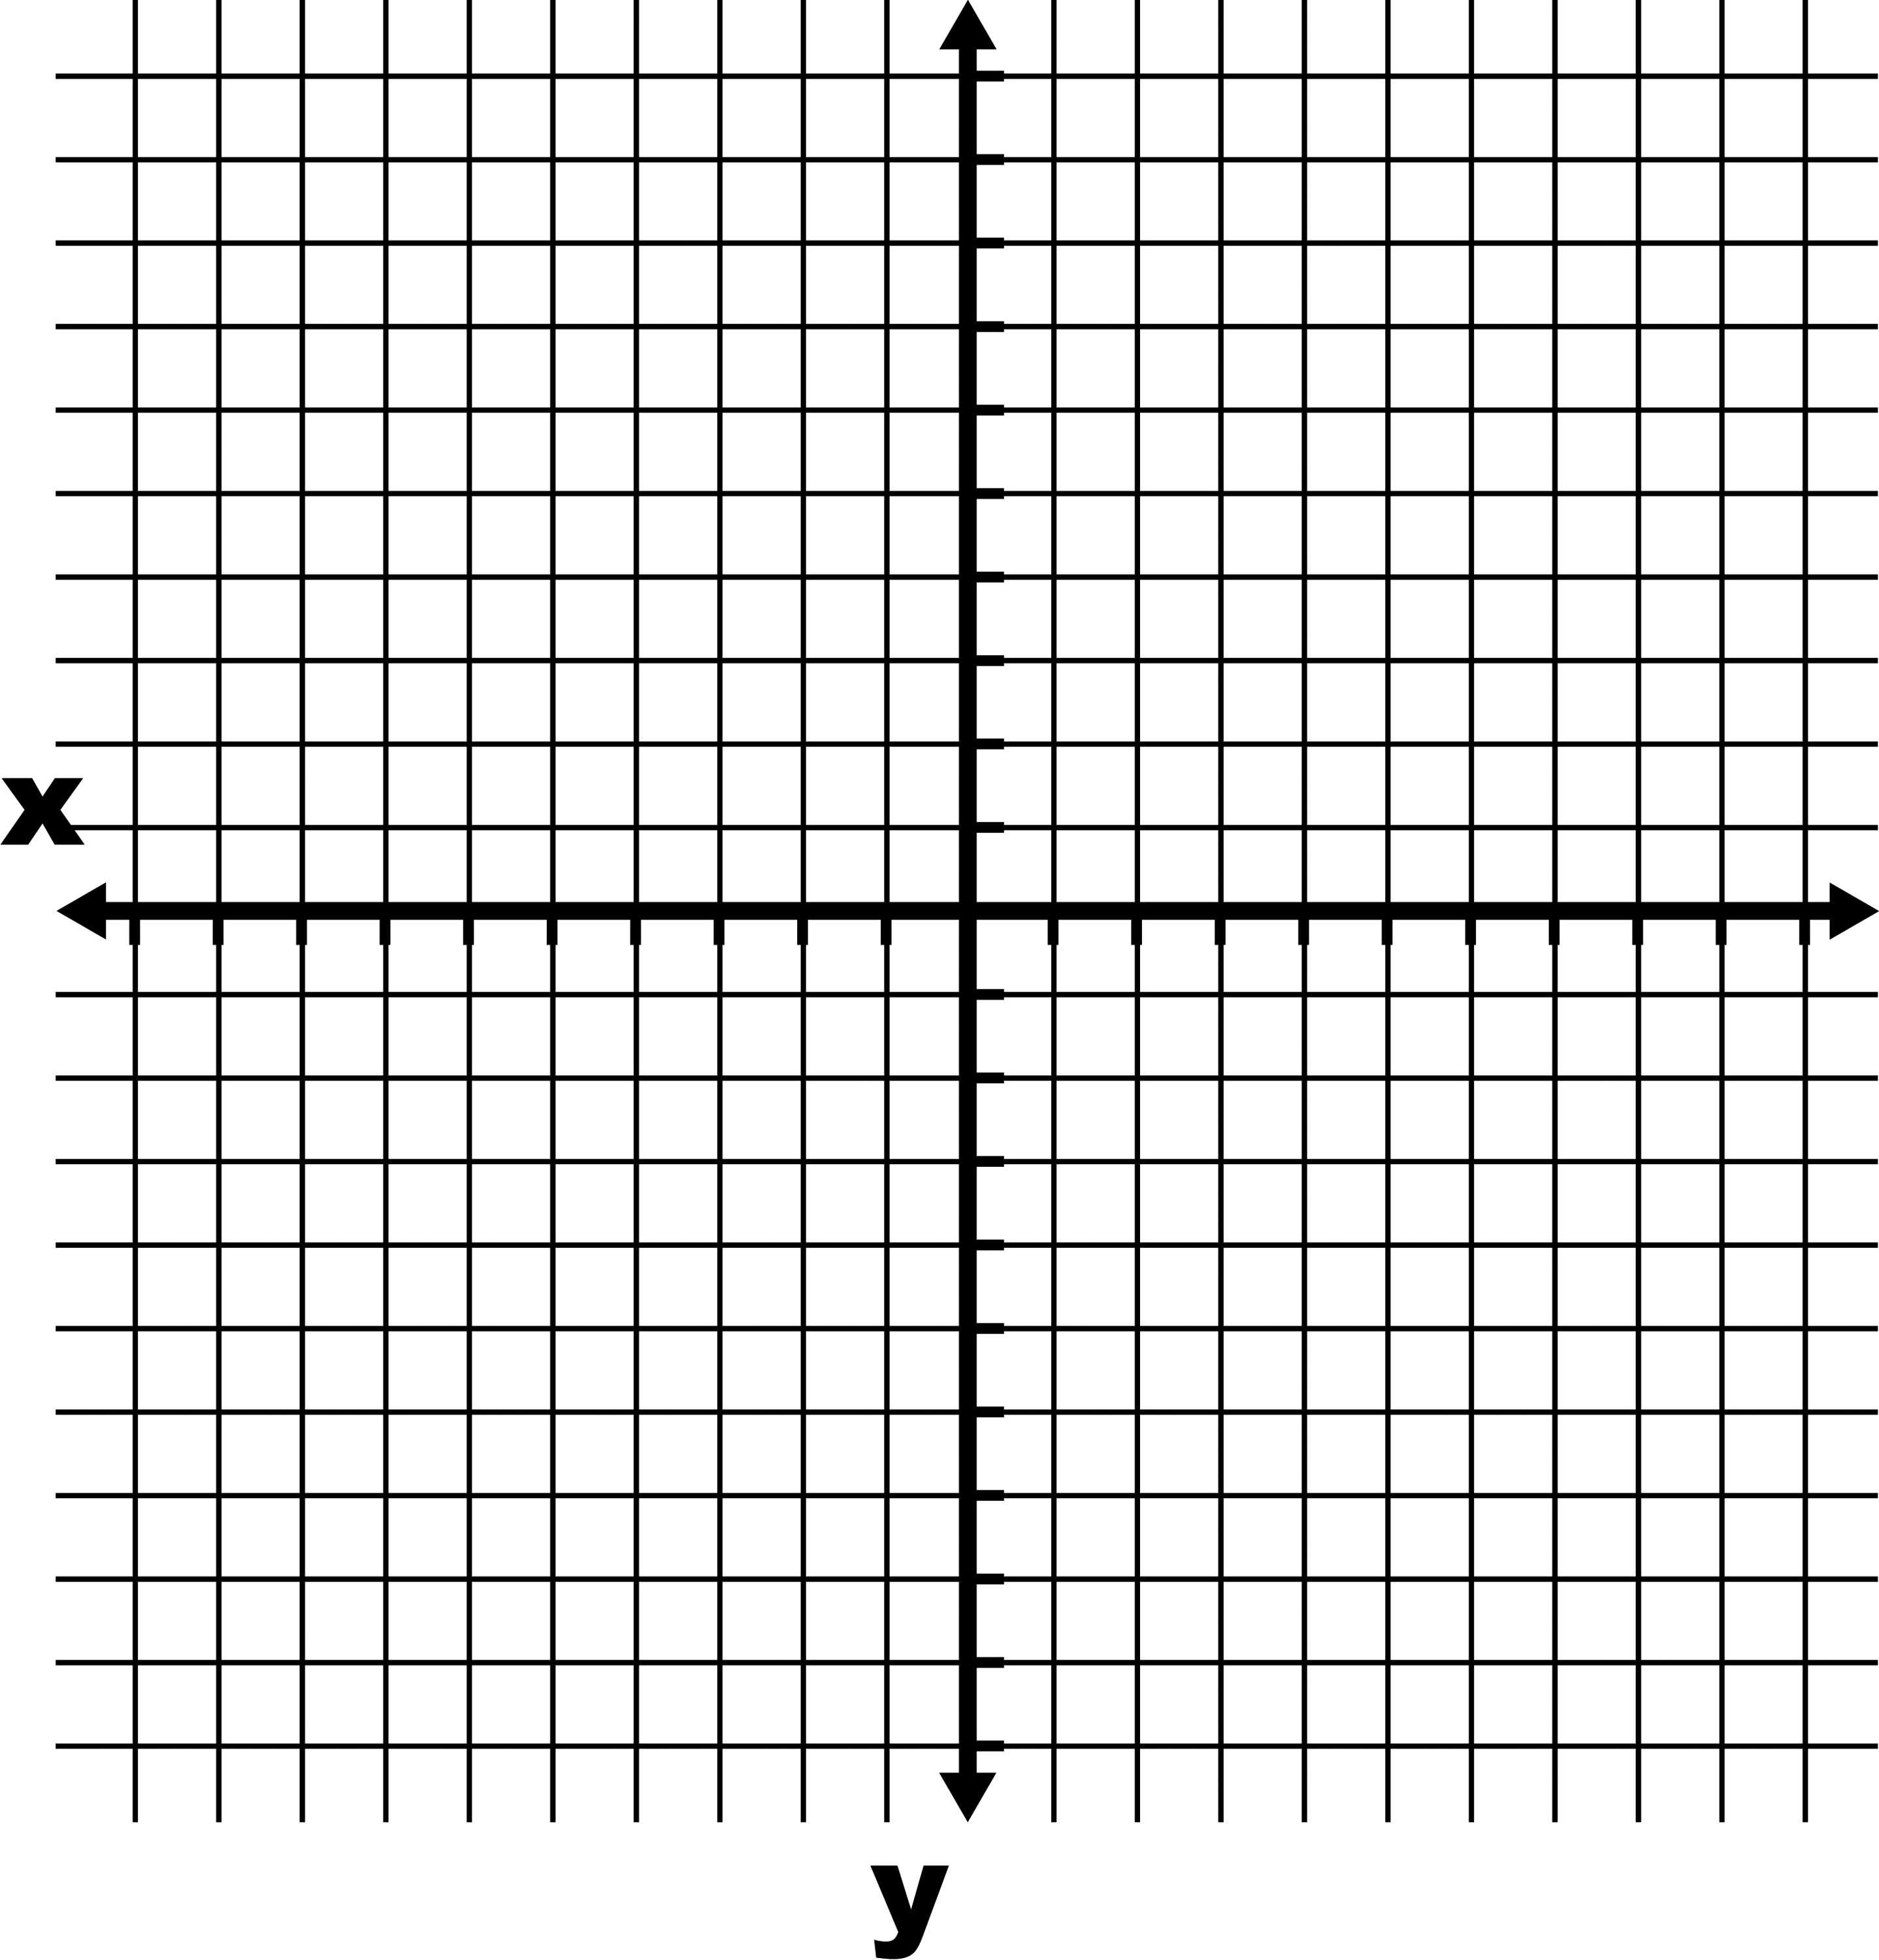 -10 To 10 Coordinate Grid With Axes Labeled And Grid Lines